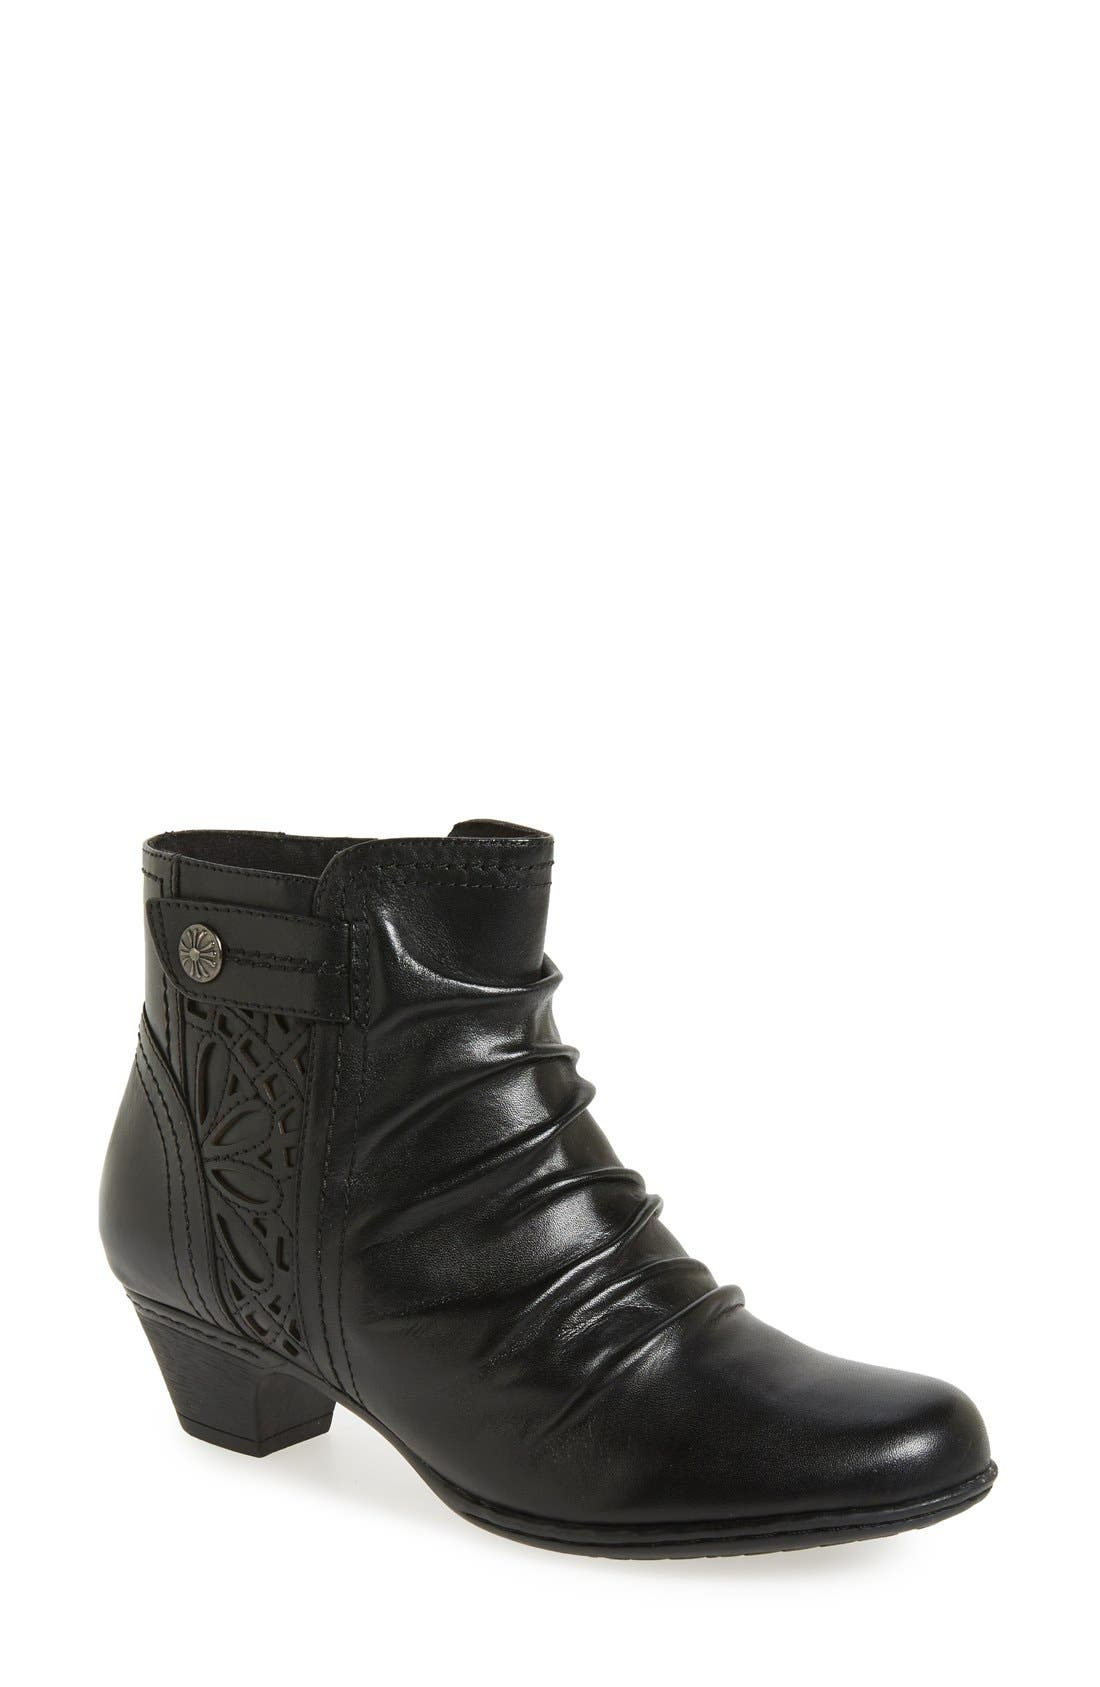 'Abilene' Bootie,                         Main,                         color, BLACK LEATHER